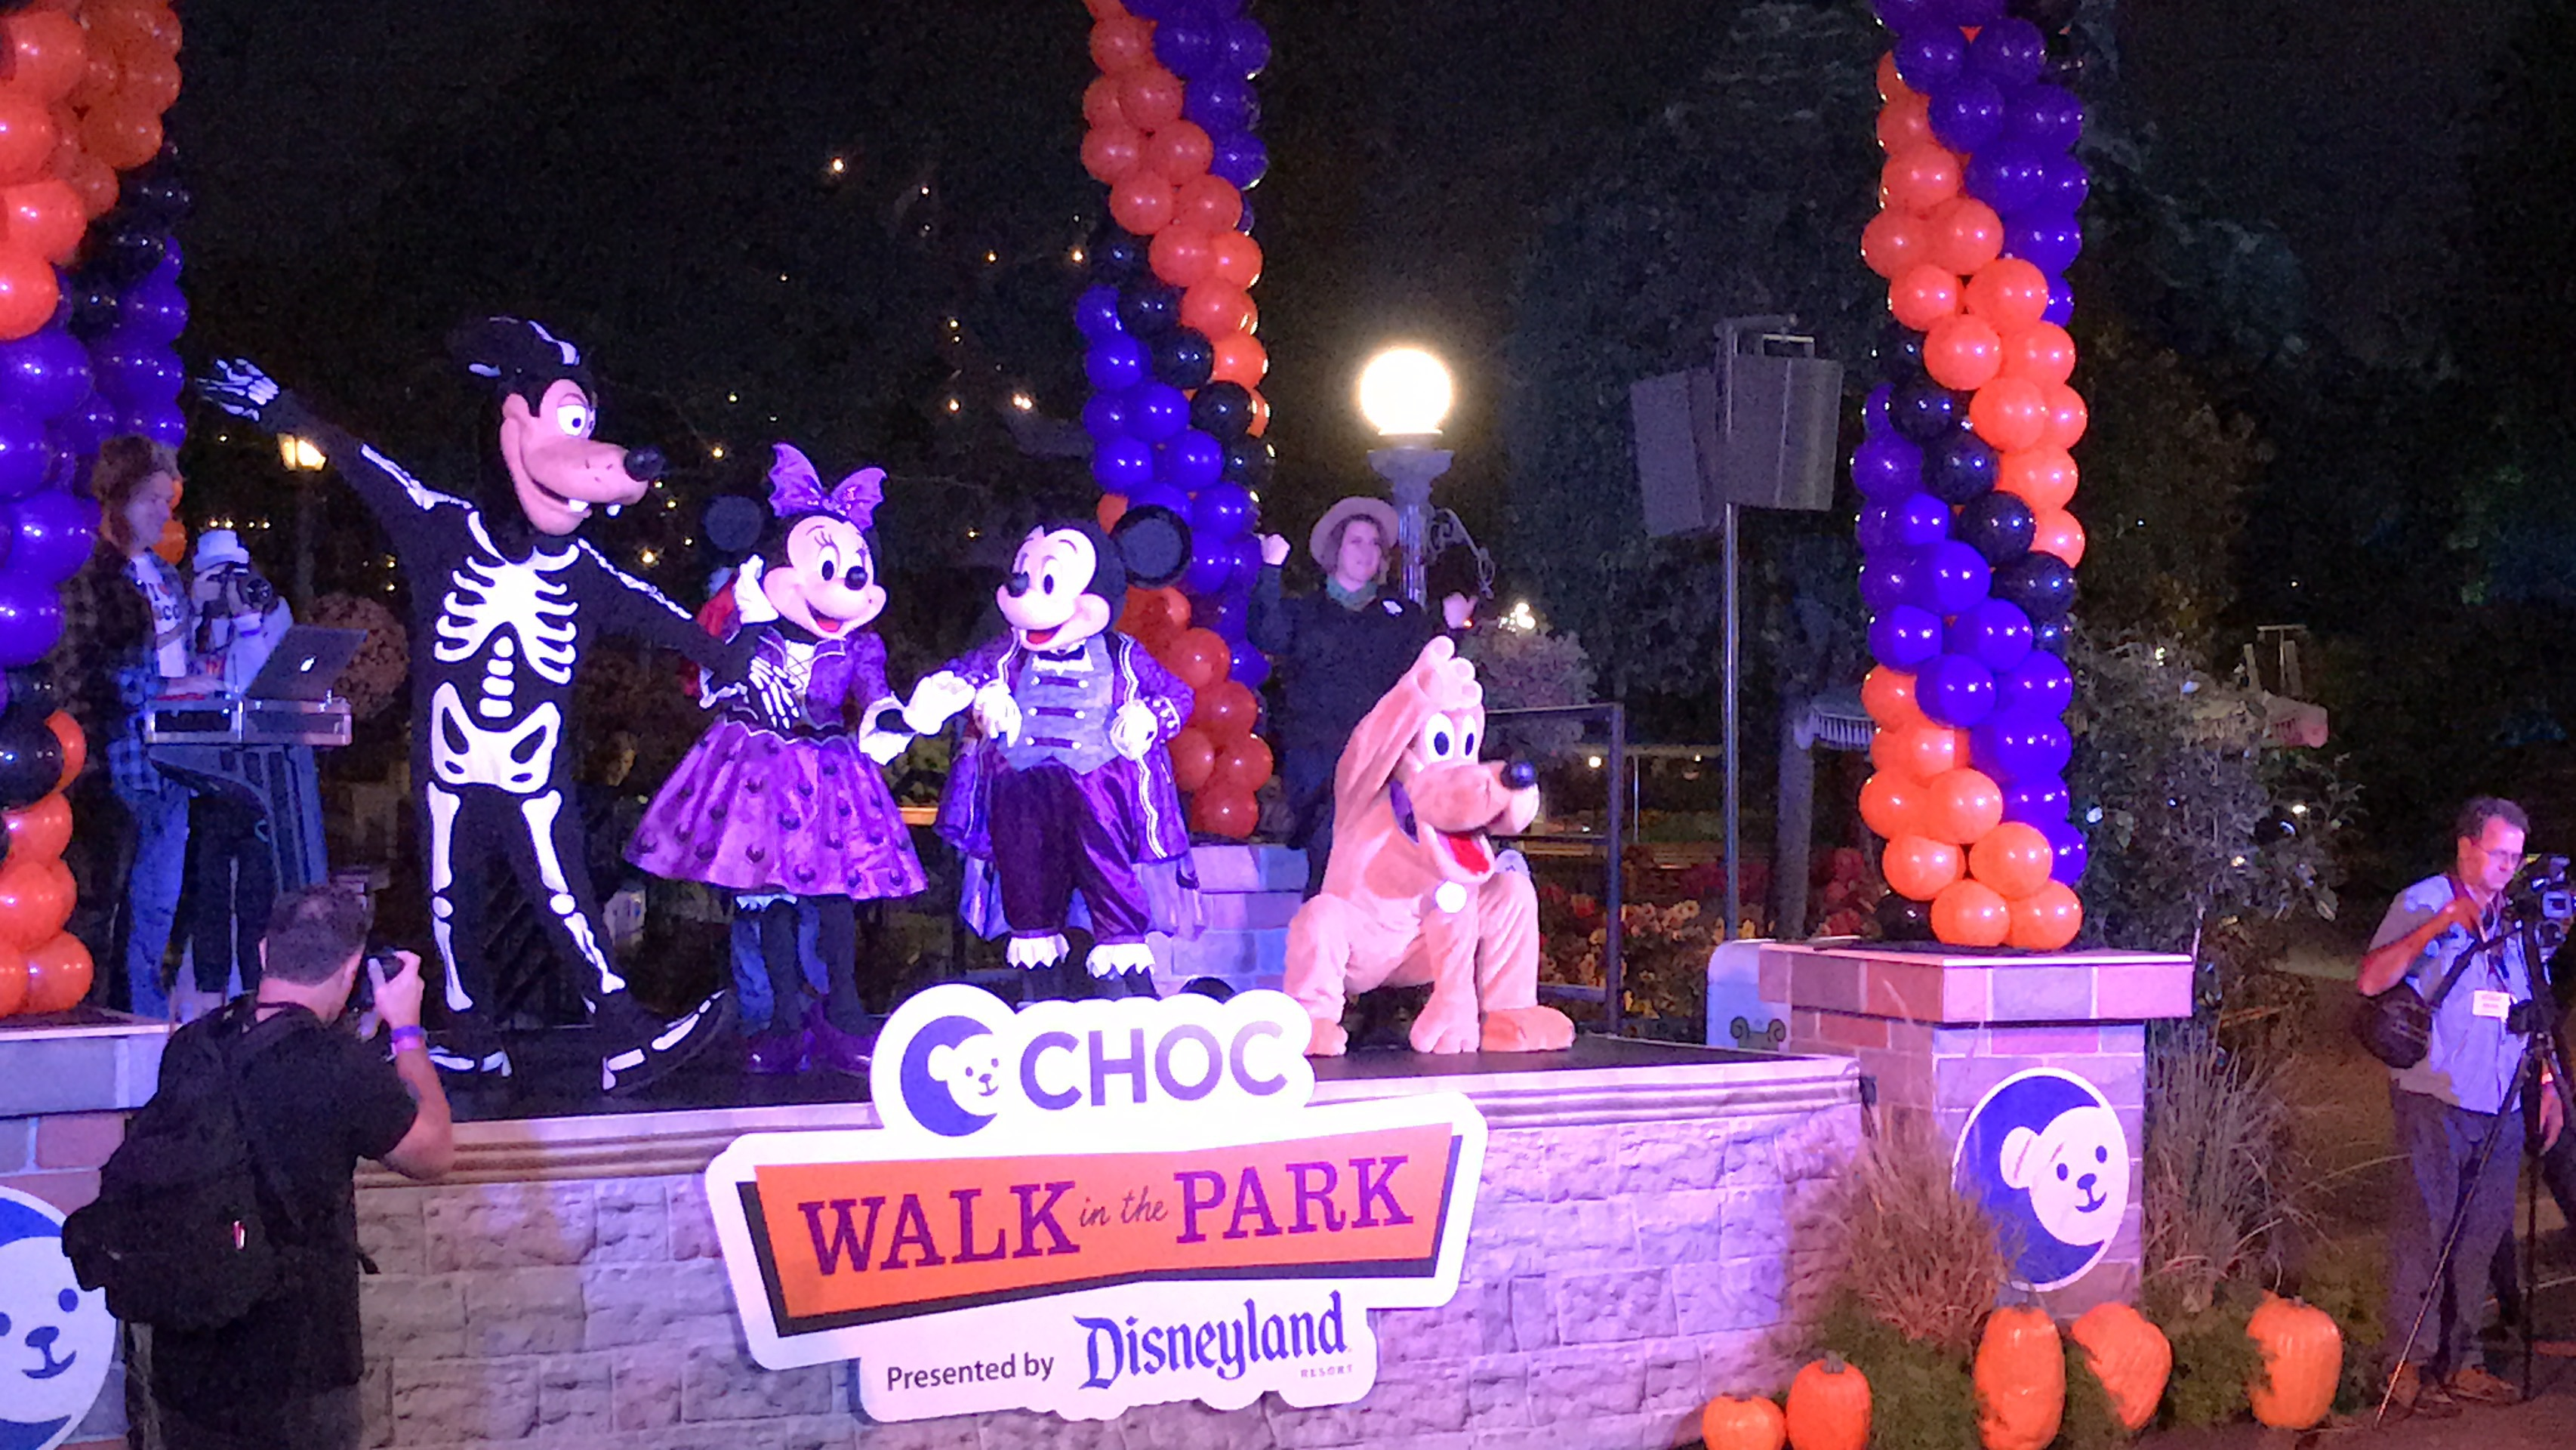 CHOC Walk in the Park 2016 Presented by Disneyland Resort